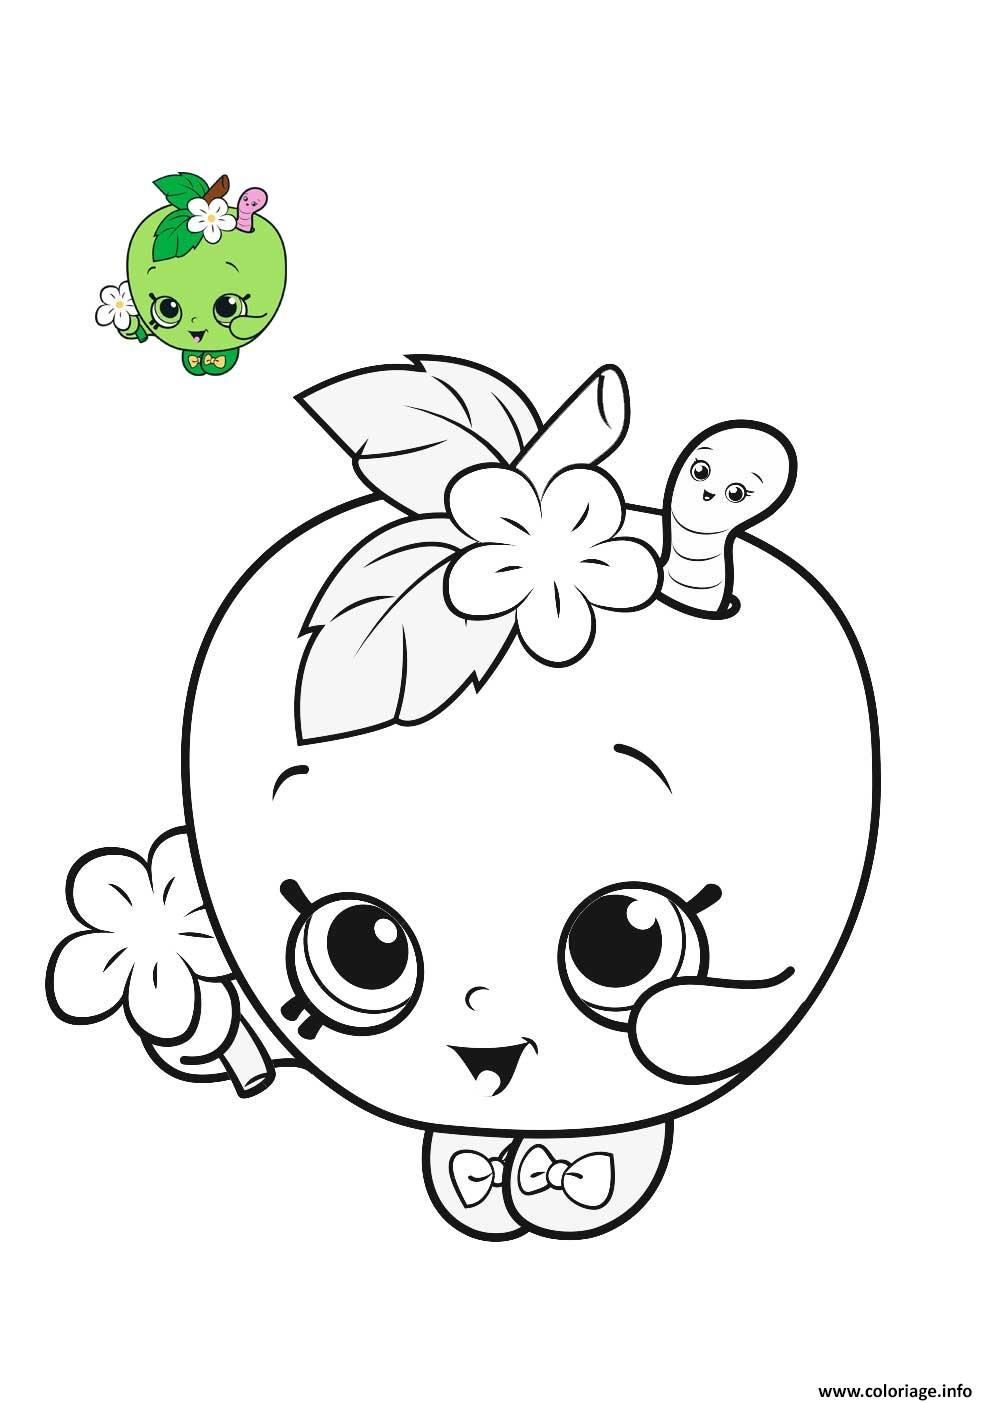 Coloriage shopkins happy apple pomme dessin - Dessin pomme apple ...